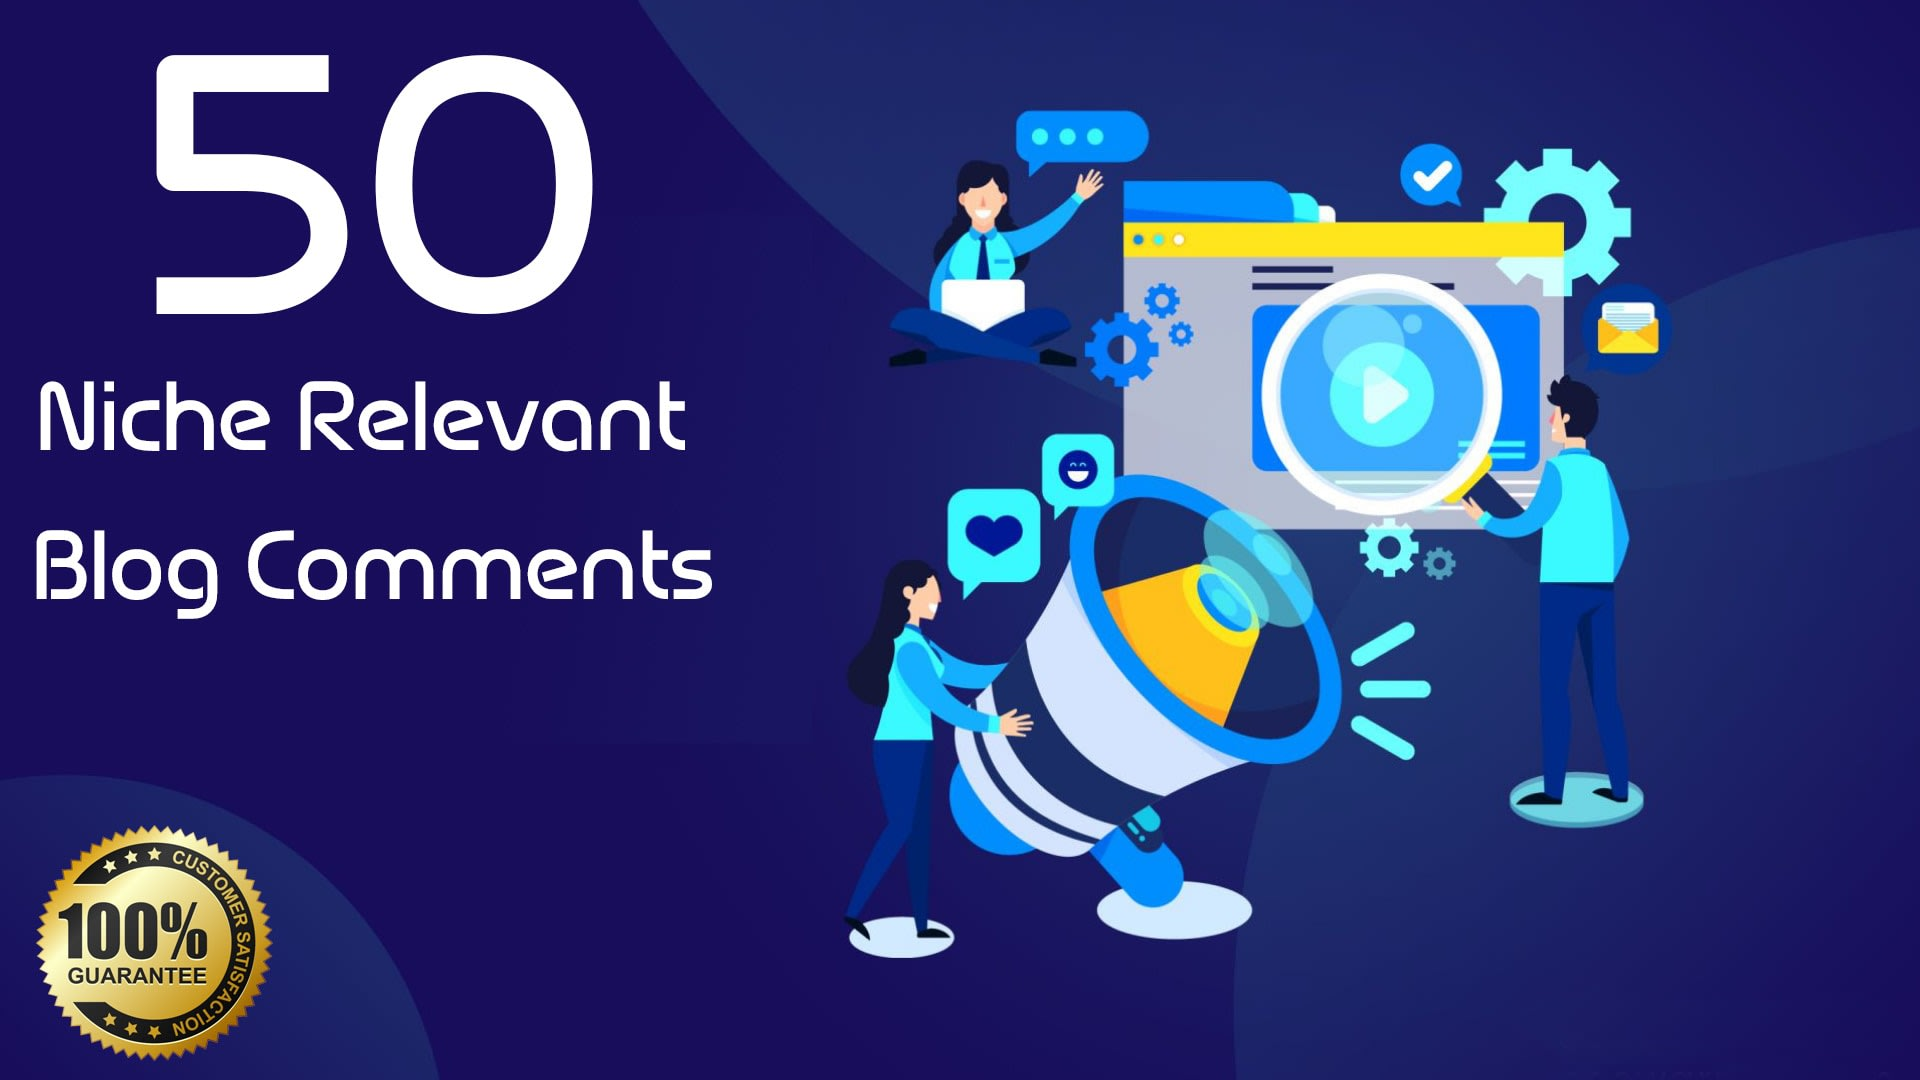 do 50 niche relevant blog comments SEO backlinks